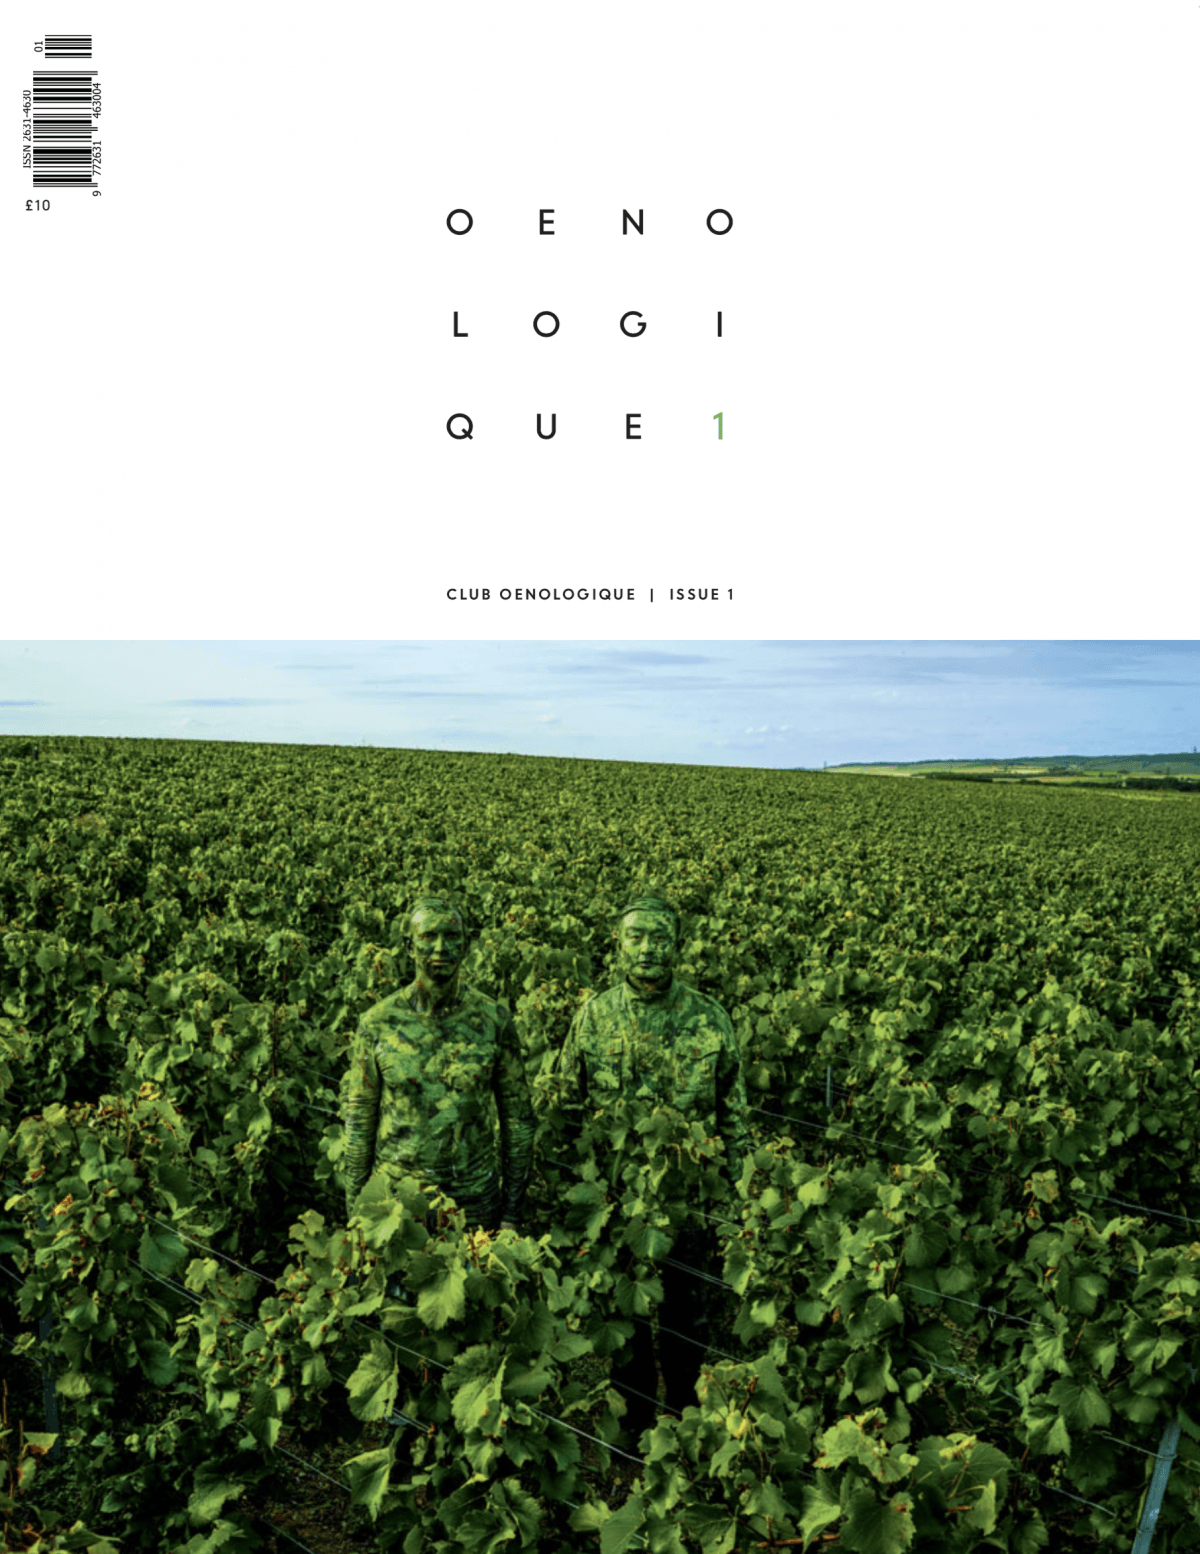 Club Oenologique issue 1 cover